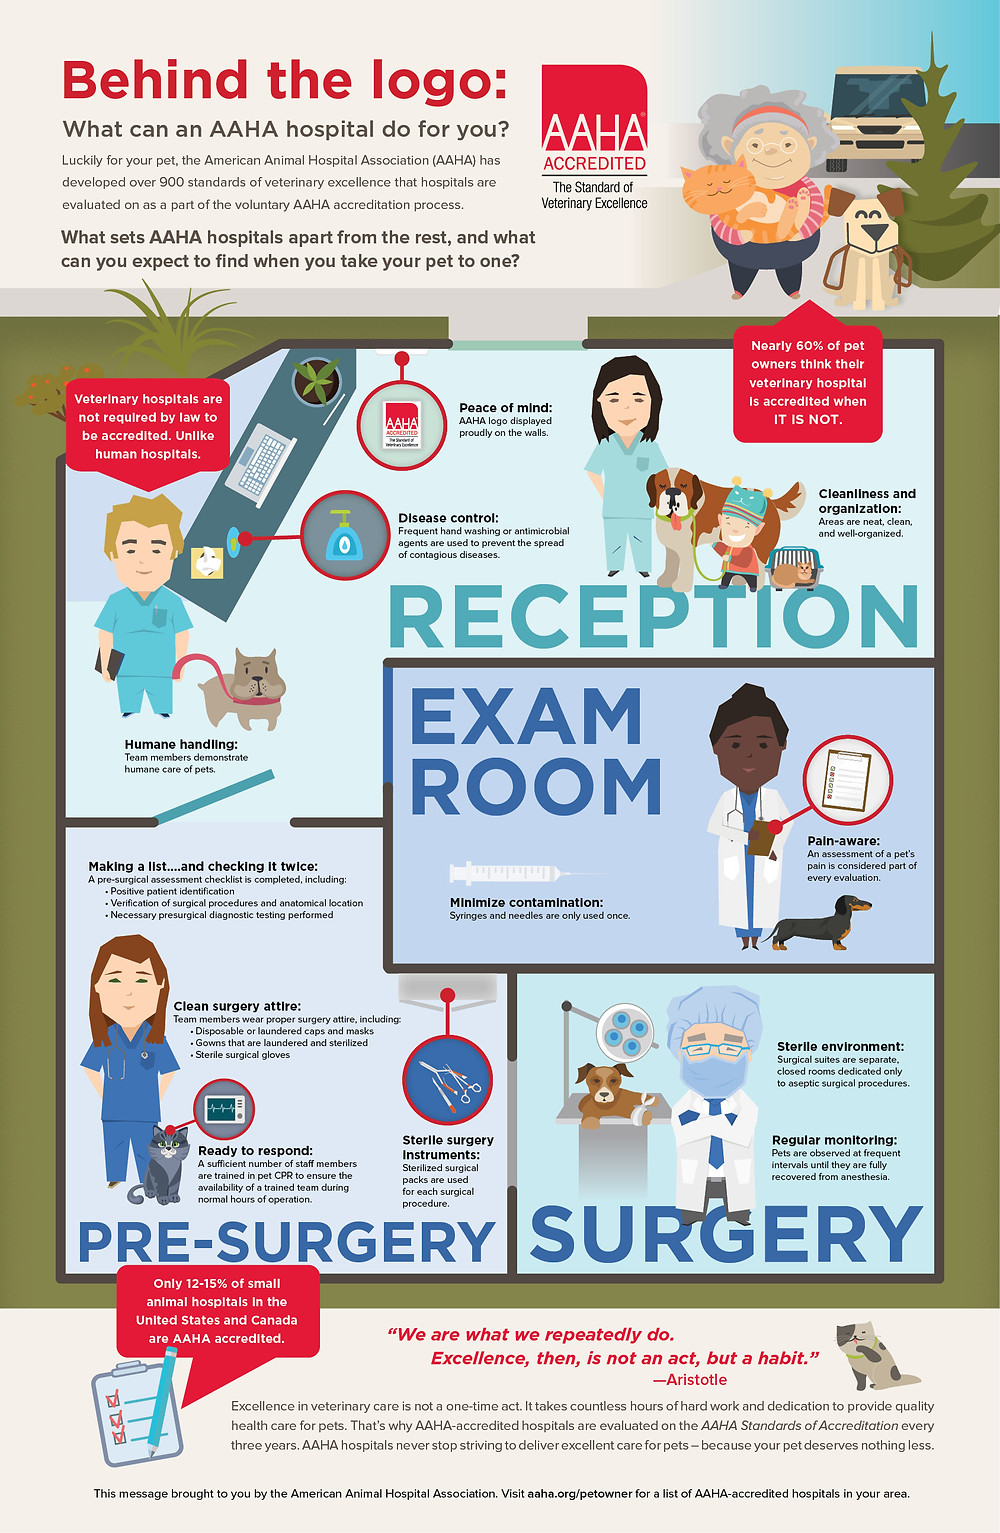 Why AAHA Accreditation is important from this infographic from their site